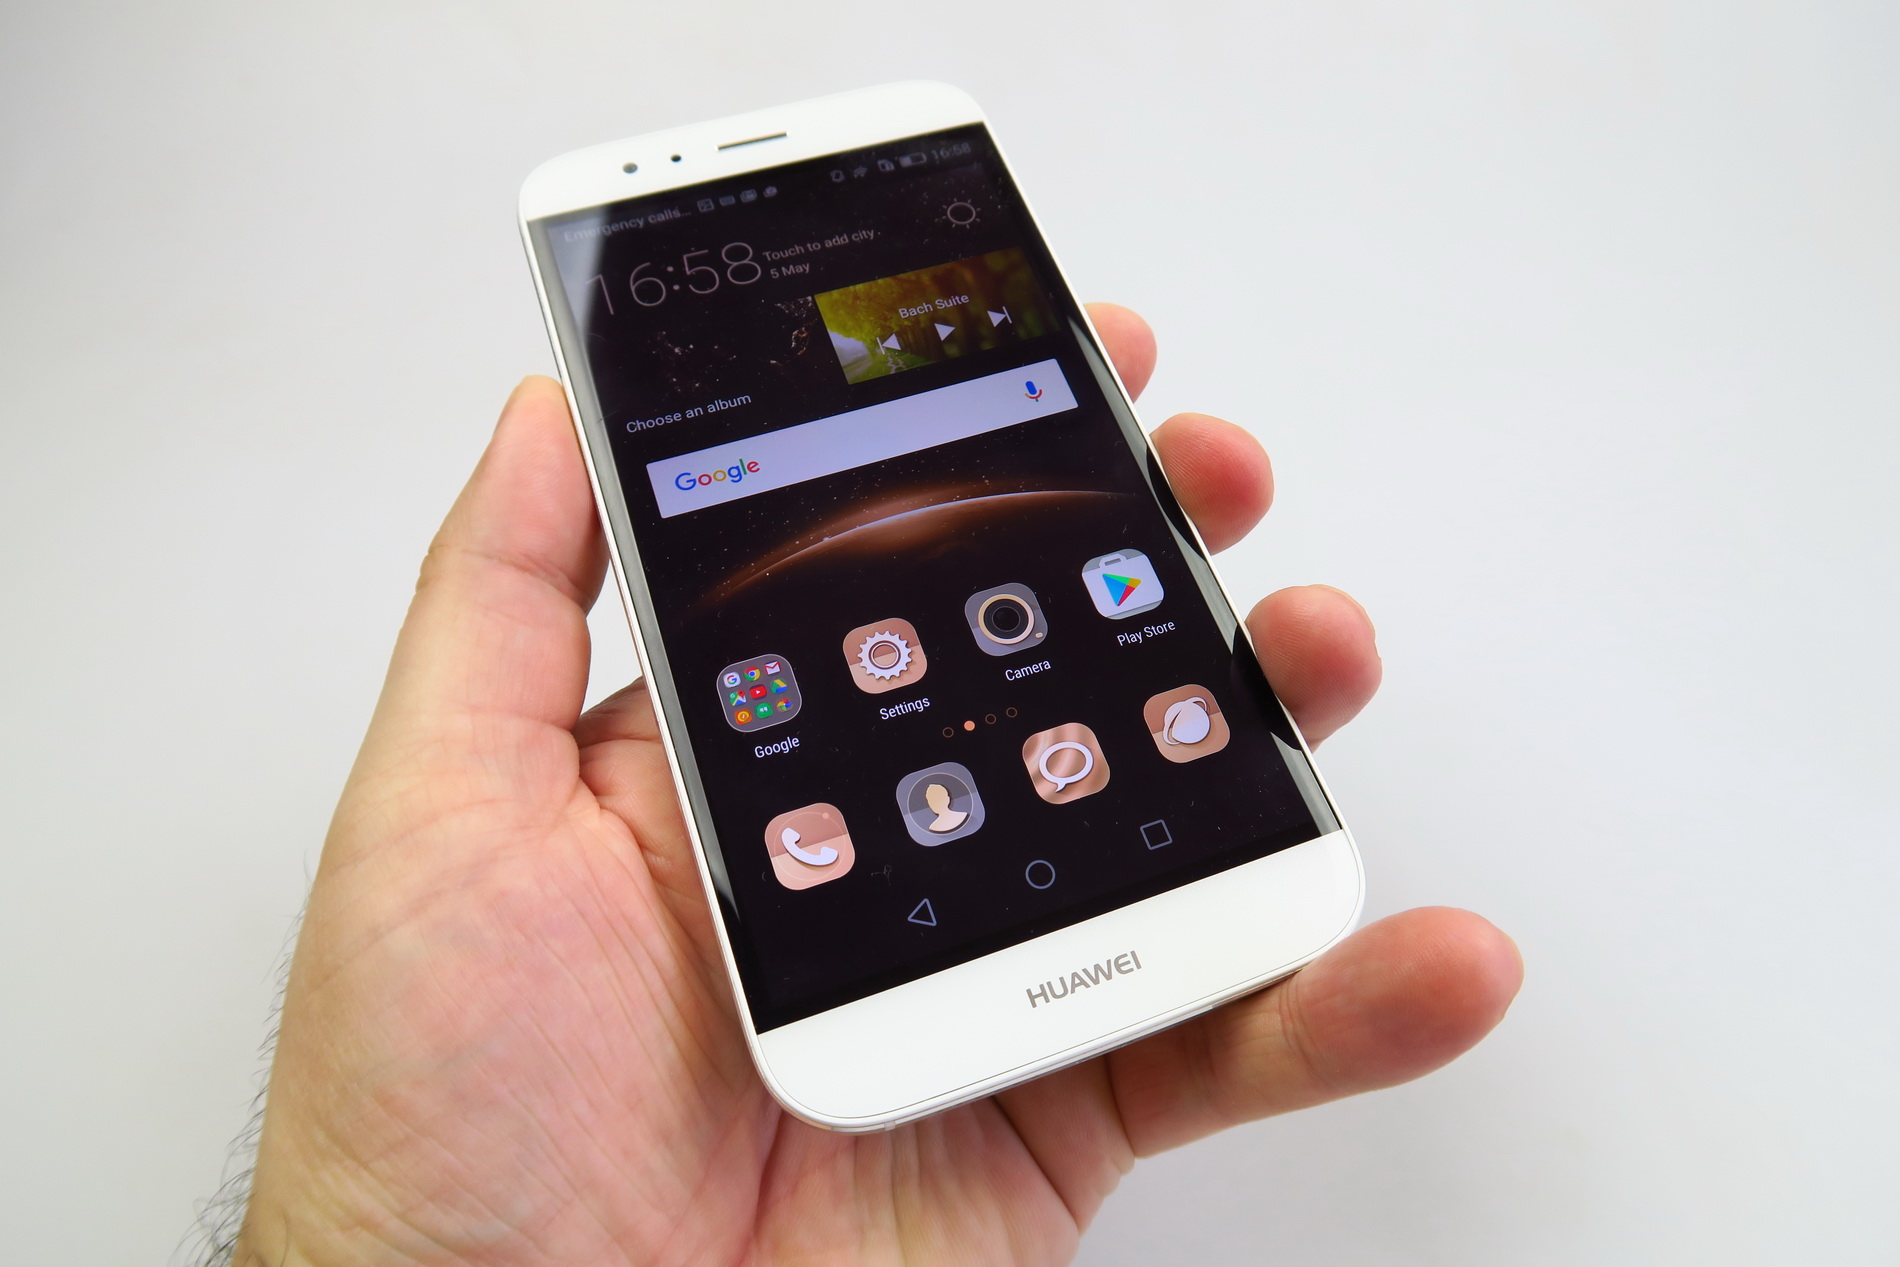 Huawei G8 Review: Finally an Interesting Design from